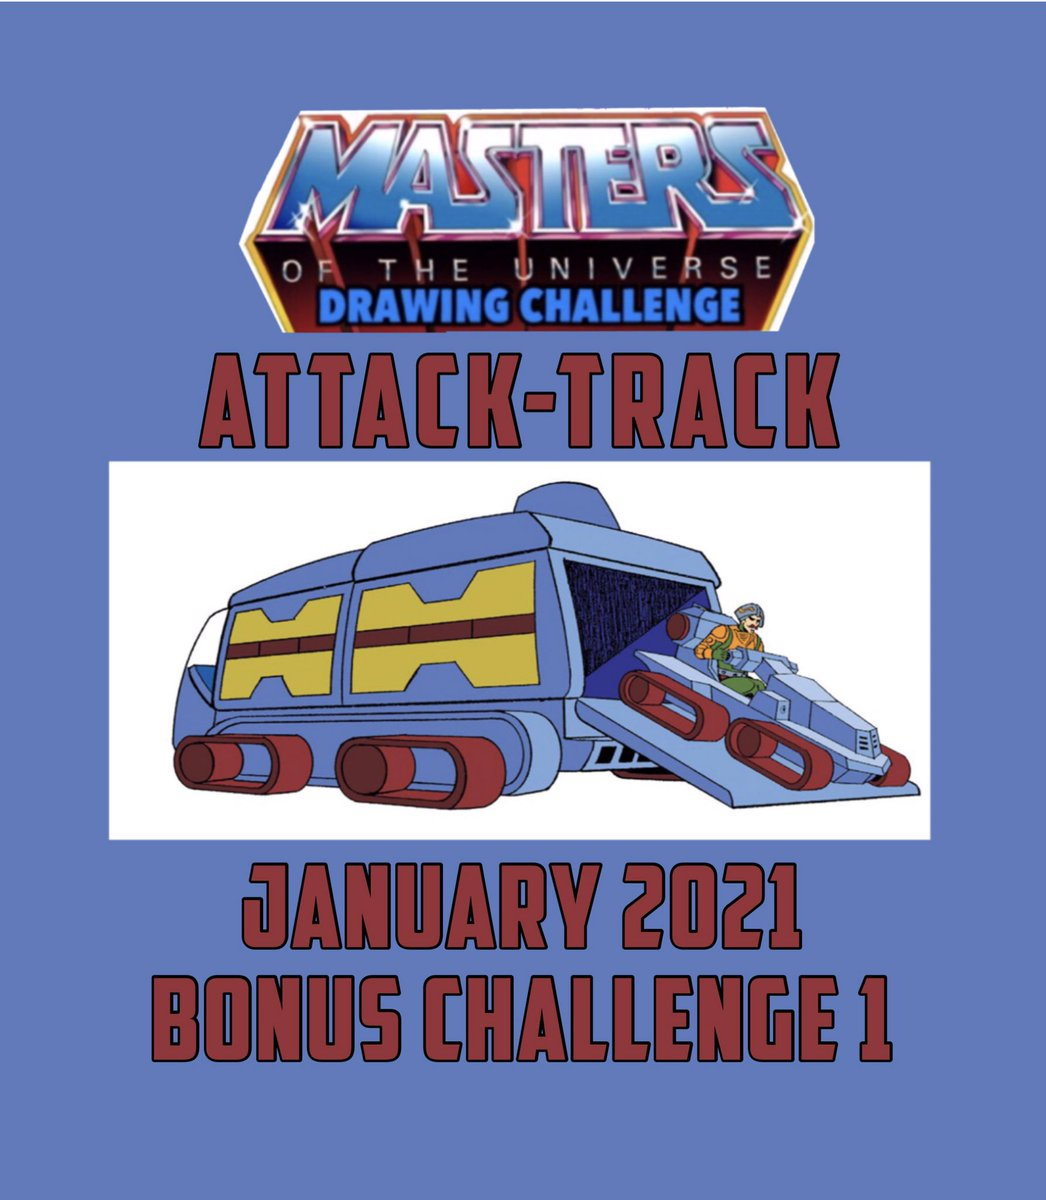 Hey Gang! Don't forget... our January 2021 Bonus Challenge #1 is  💥Attack Track!   #motudrawingchallenge #attacktrack #motu #heman #vehicles #mastersoftheuniverse